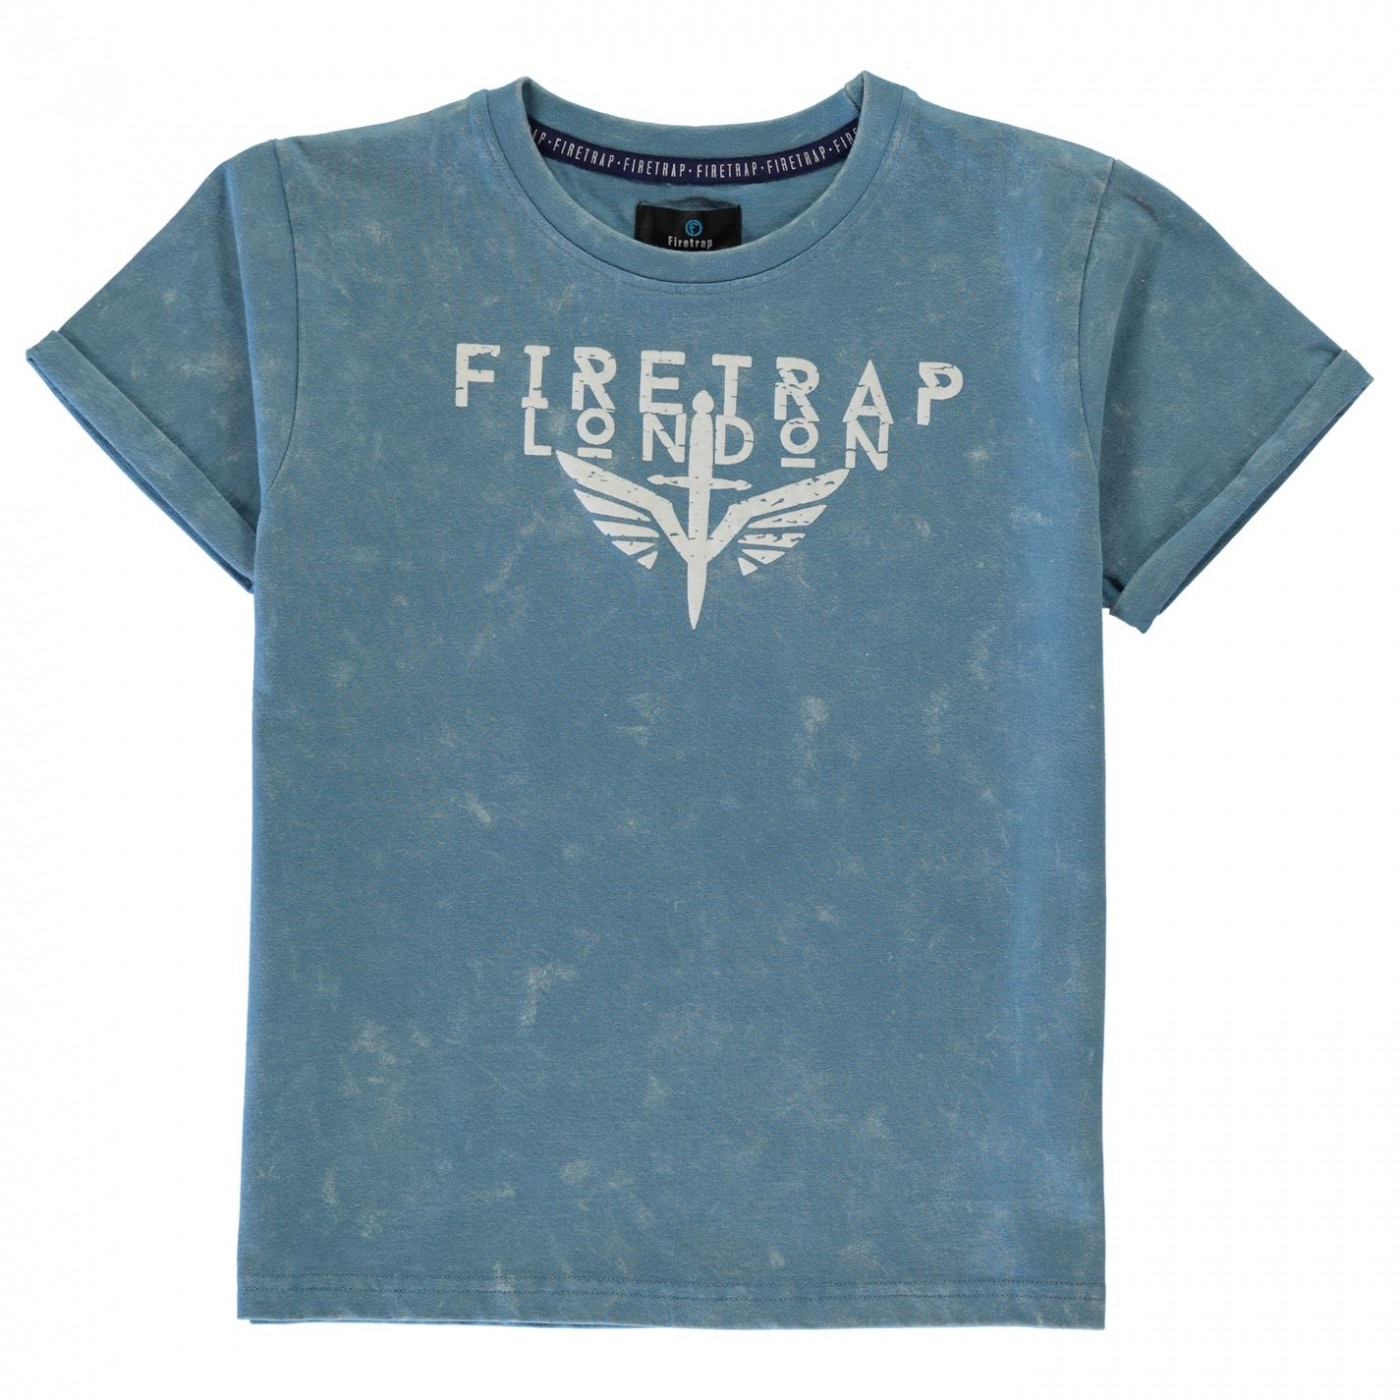 Firetrap Acid Wash T Shirt Junior Boys